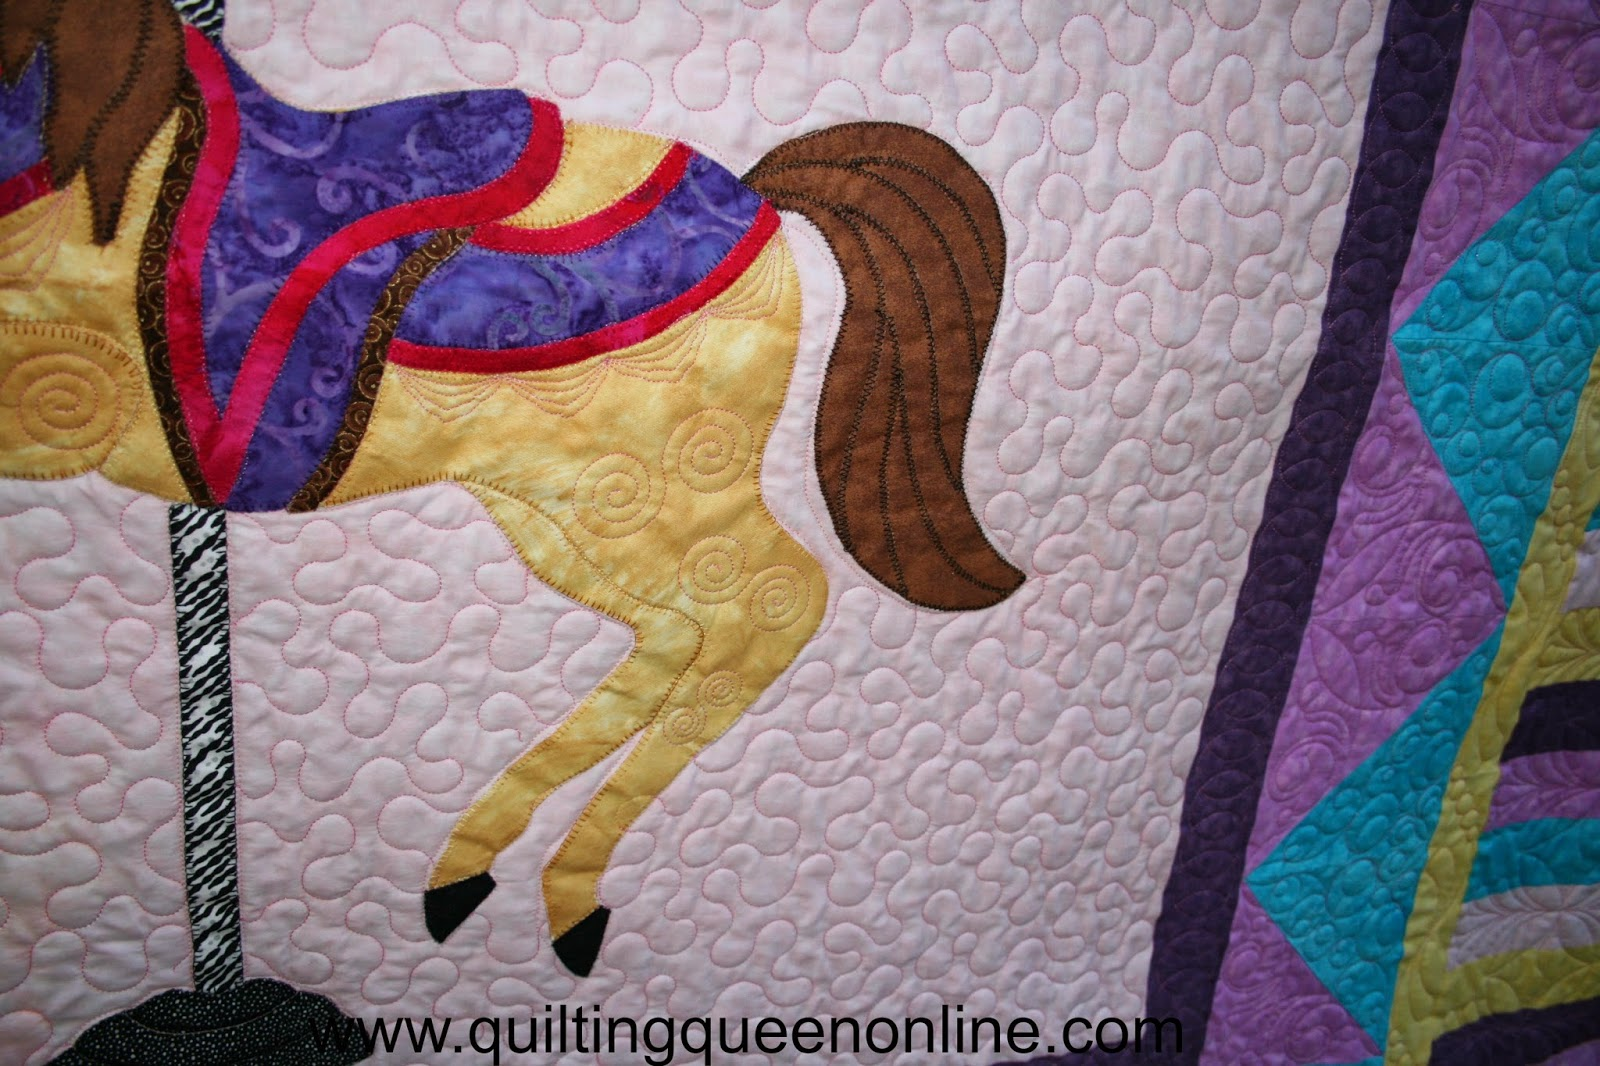 Longarm Quilting 7 2014 The Quilting Queen Online